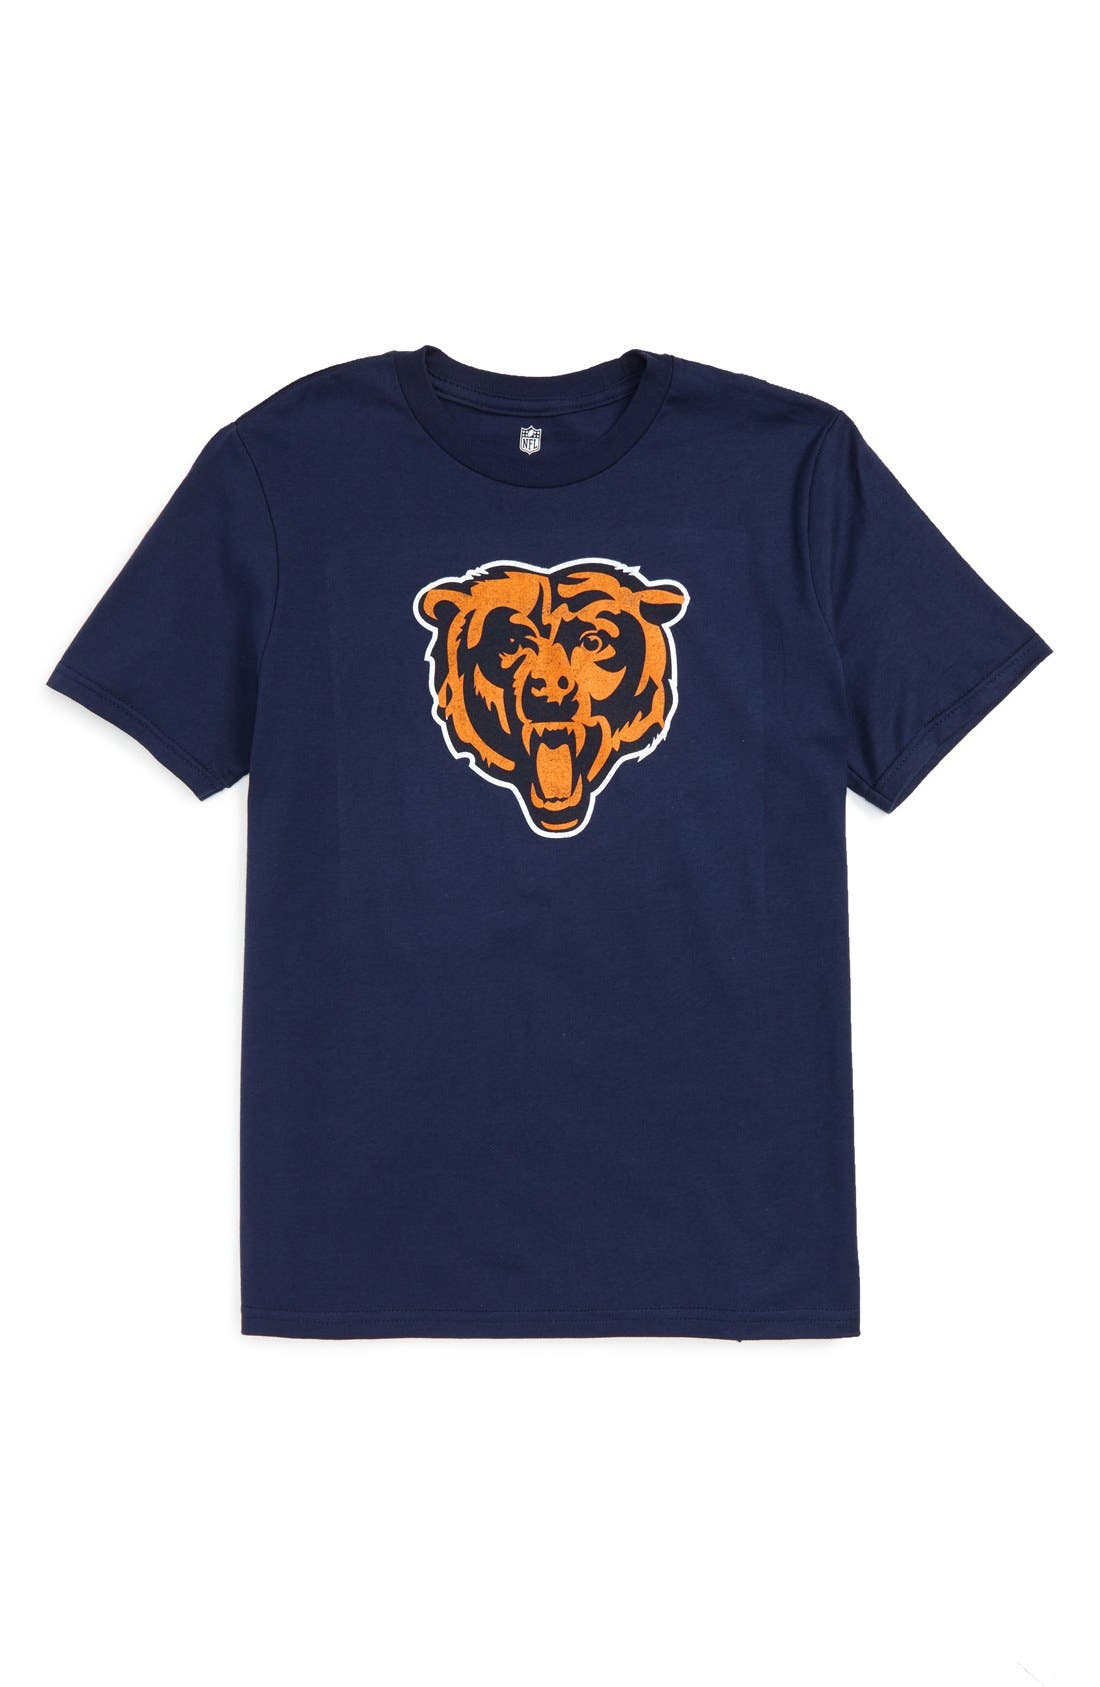 Outerstuff 'NFL - Chicago Bears' Distressed Team Logo Graphic T-Shirt (Toddler Boys & Little Boys)